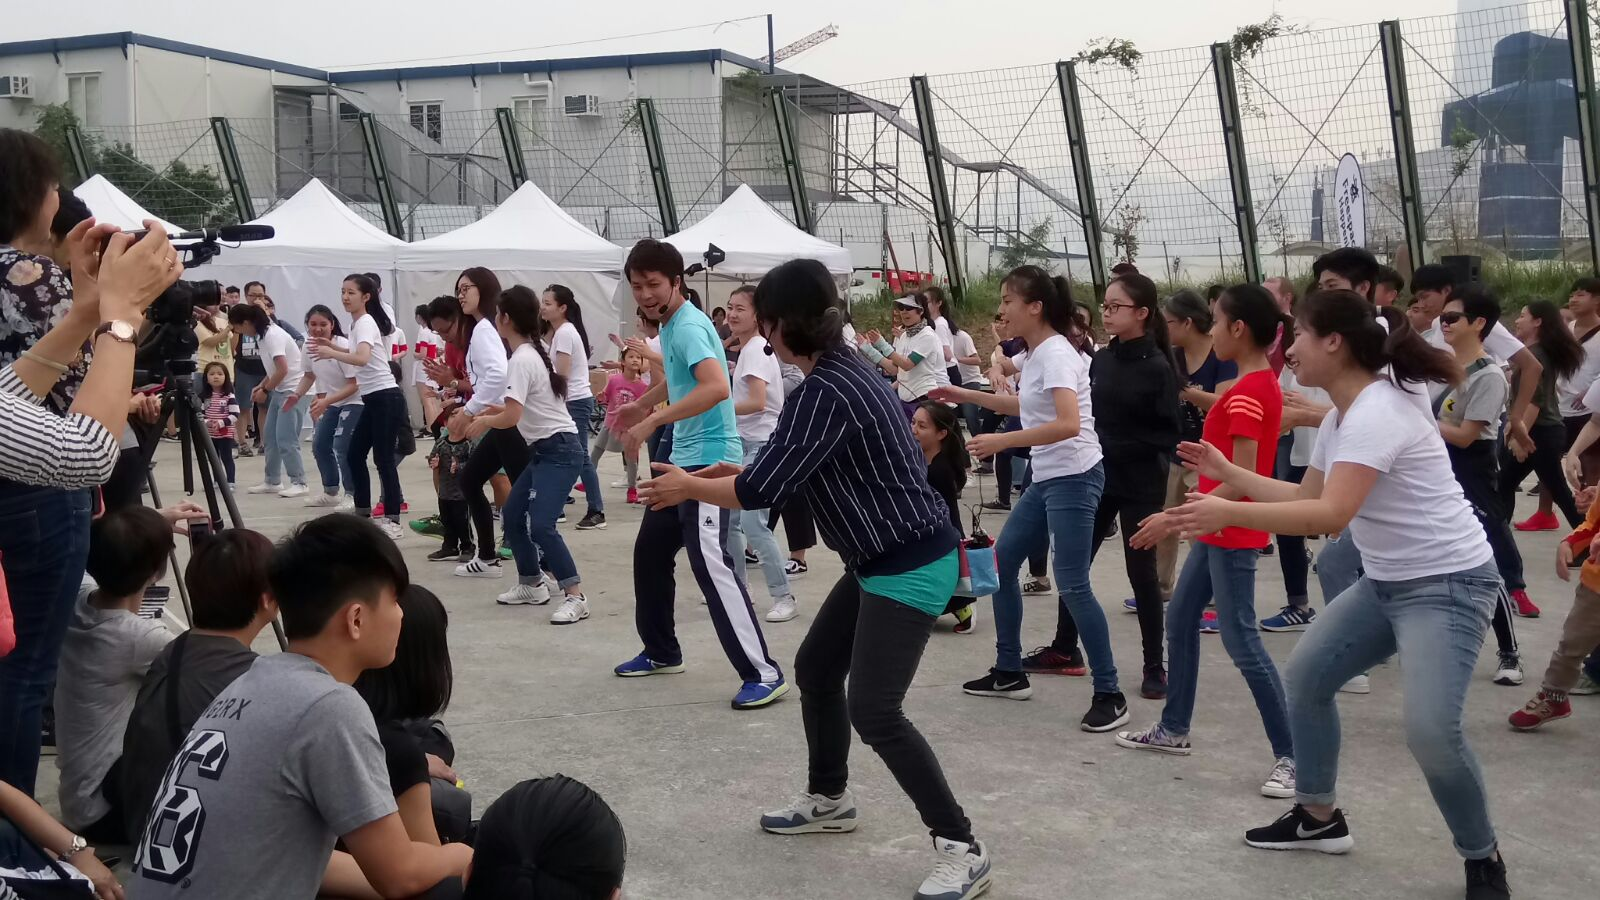 West Kowloon District Big Dance Day